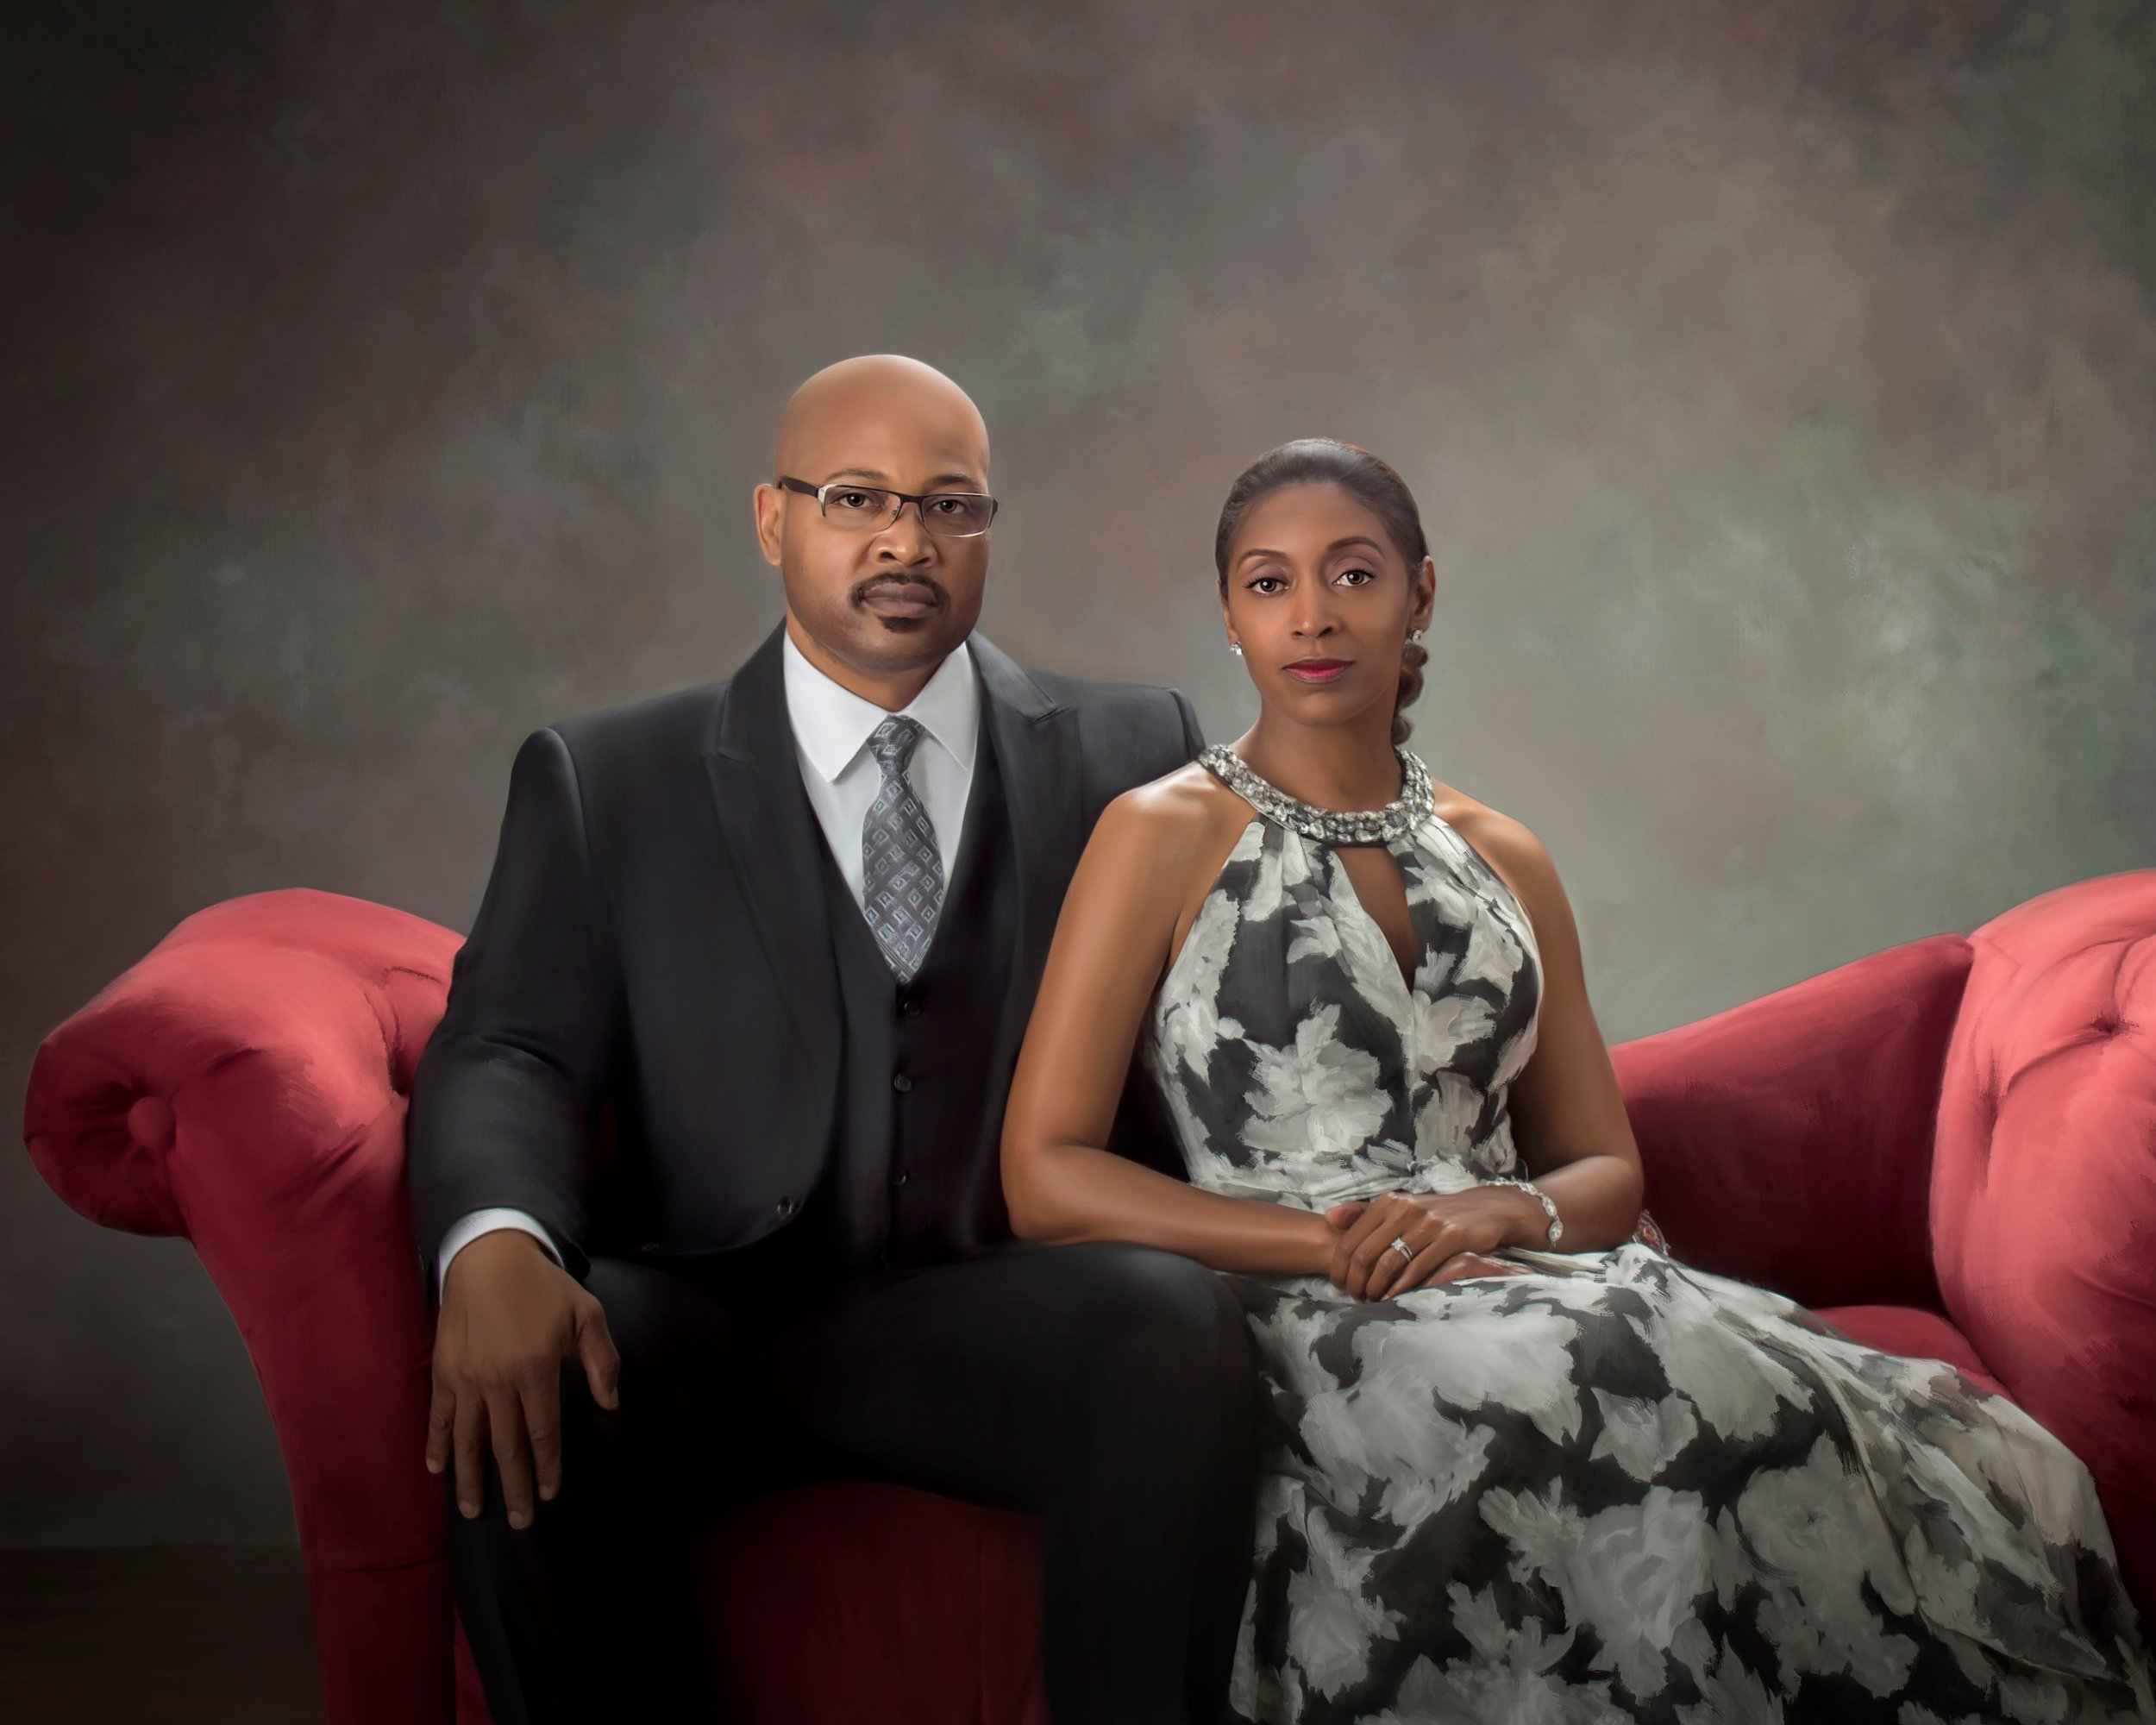 - The Metcalf Staff were great and made the experience easy. The studio was warm and inviting and non intimidating. We truly enjoyed our experience there. We are happy to be a part of the Metcalf Family!- Danny and Anita Jackson